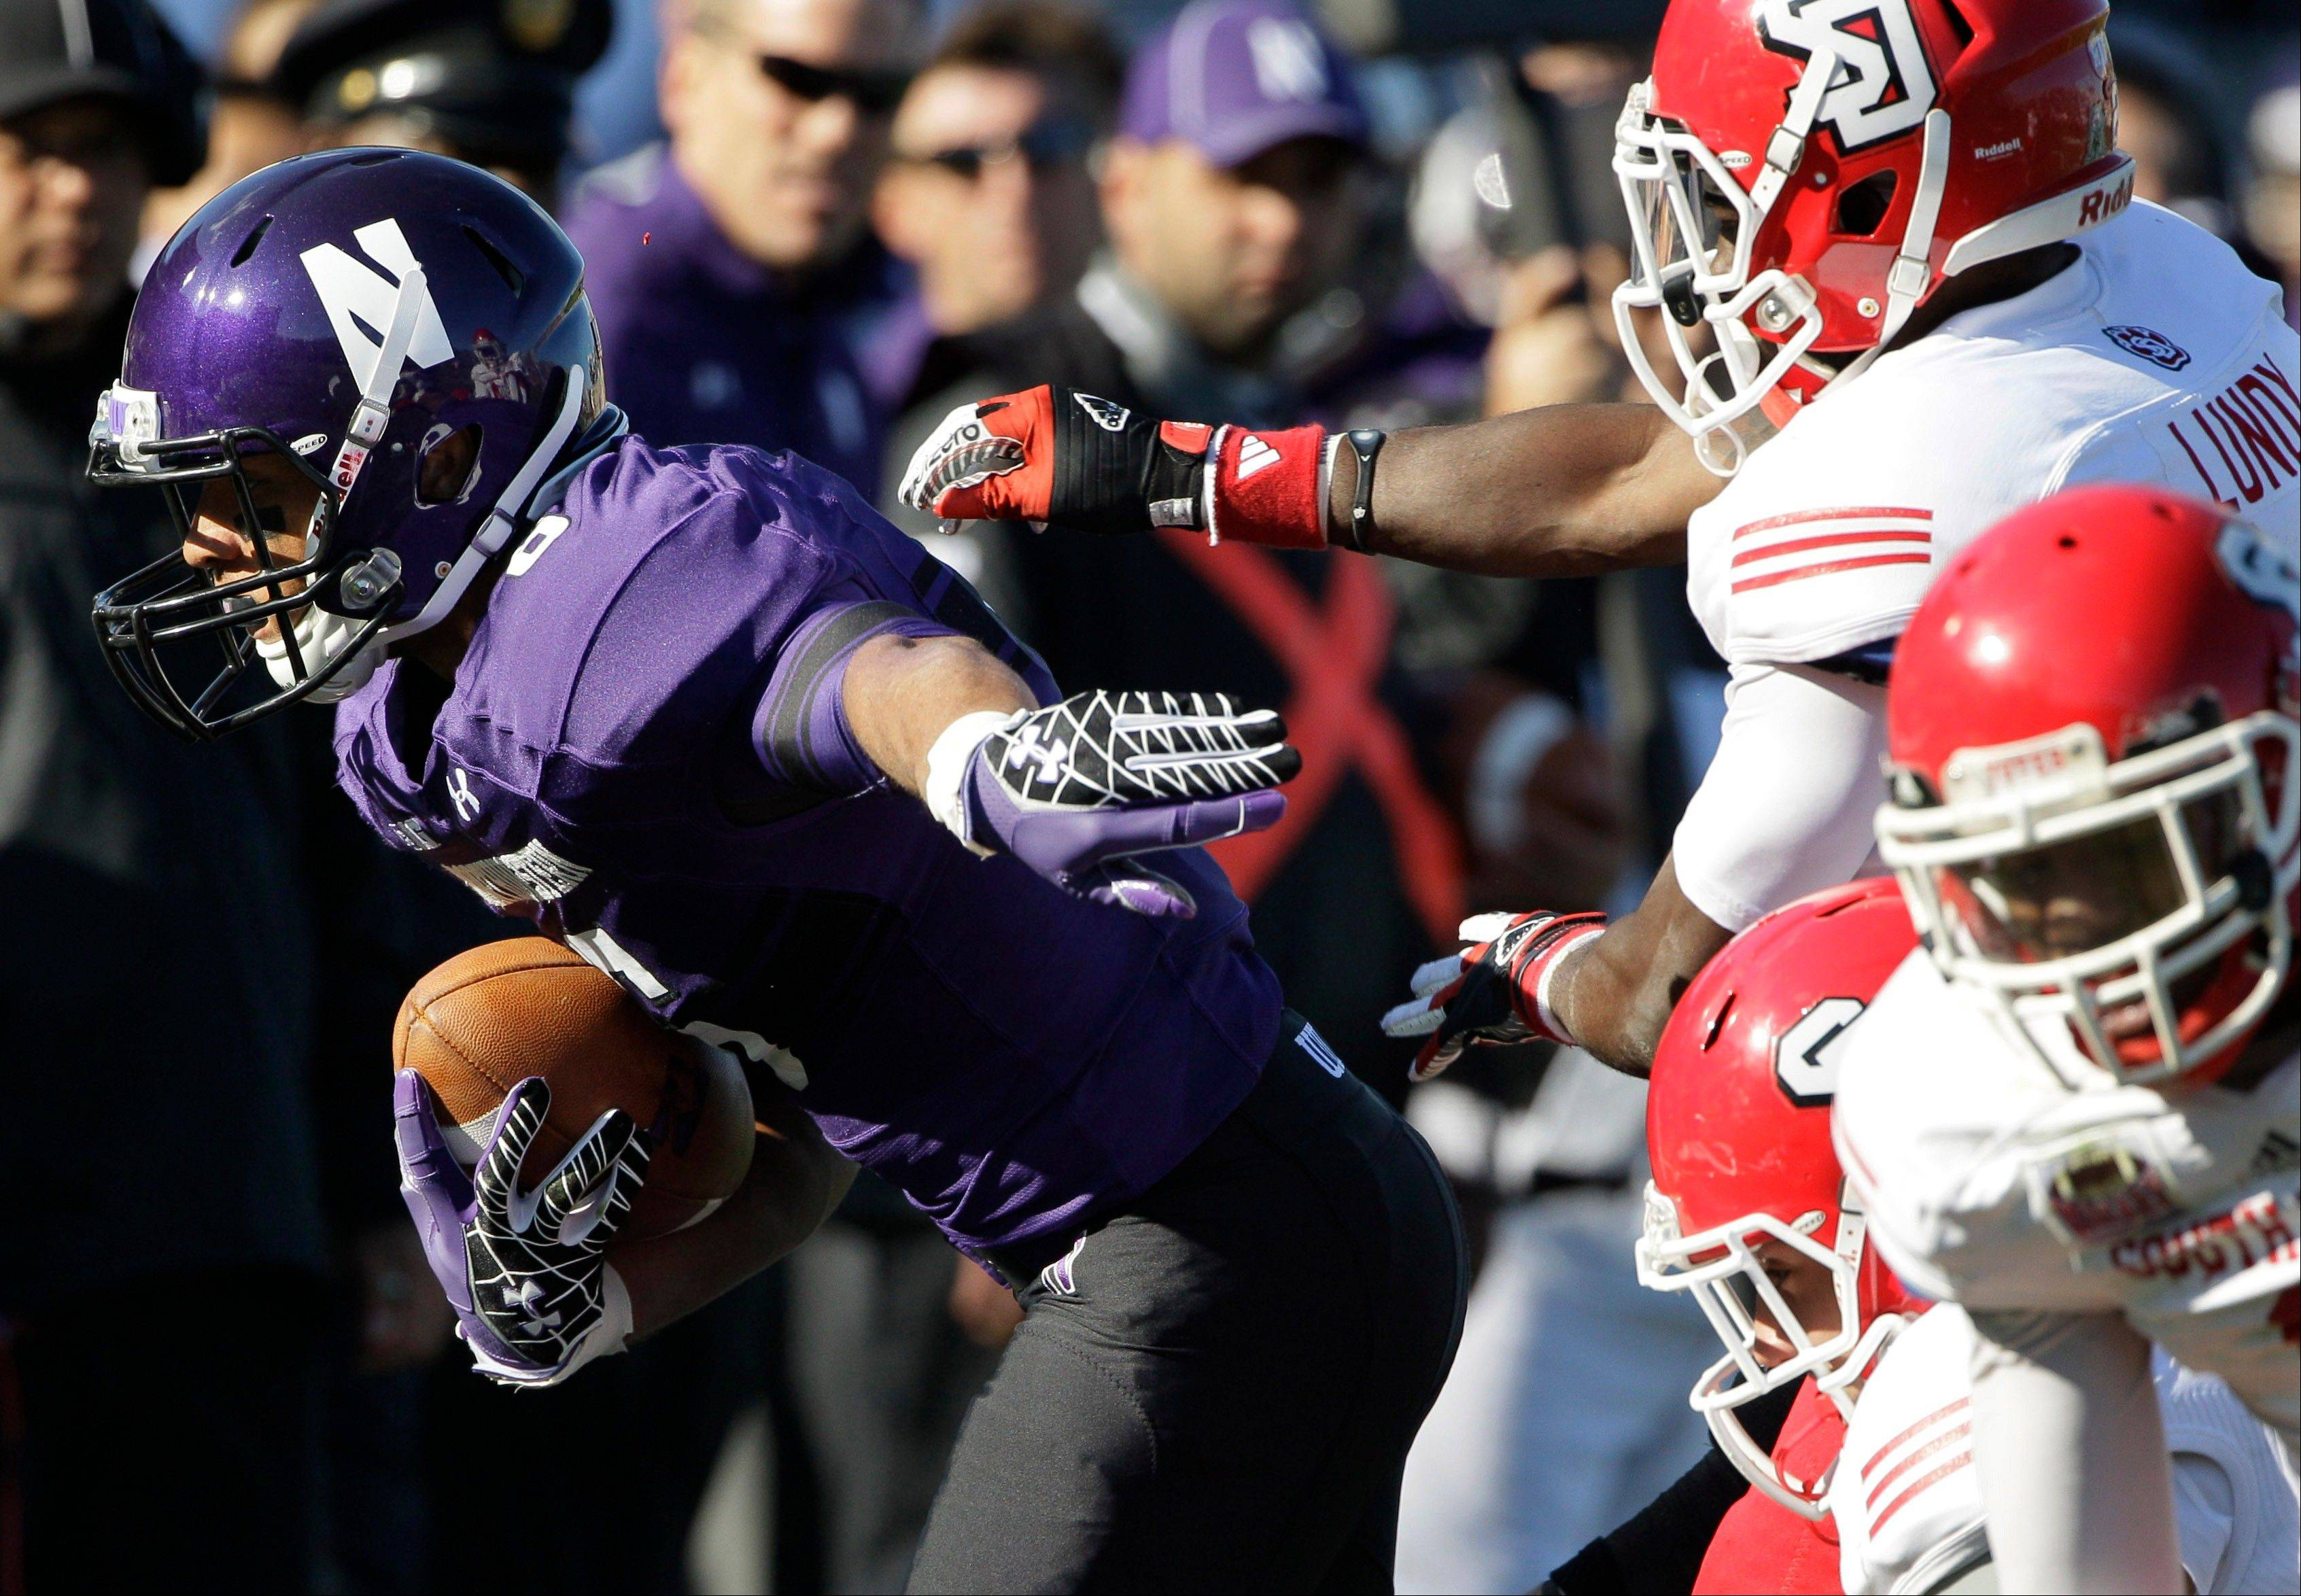 Northwestern wide receiver Tony Jones runs past South Dakota defensive back Chris Lundy during last Saturday�s game in Evanston.